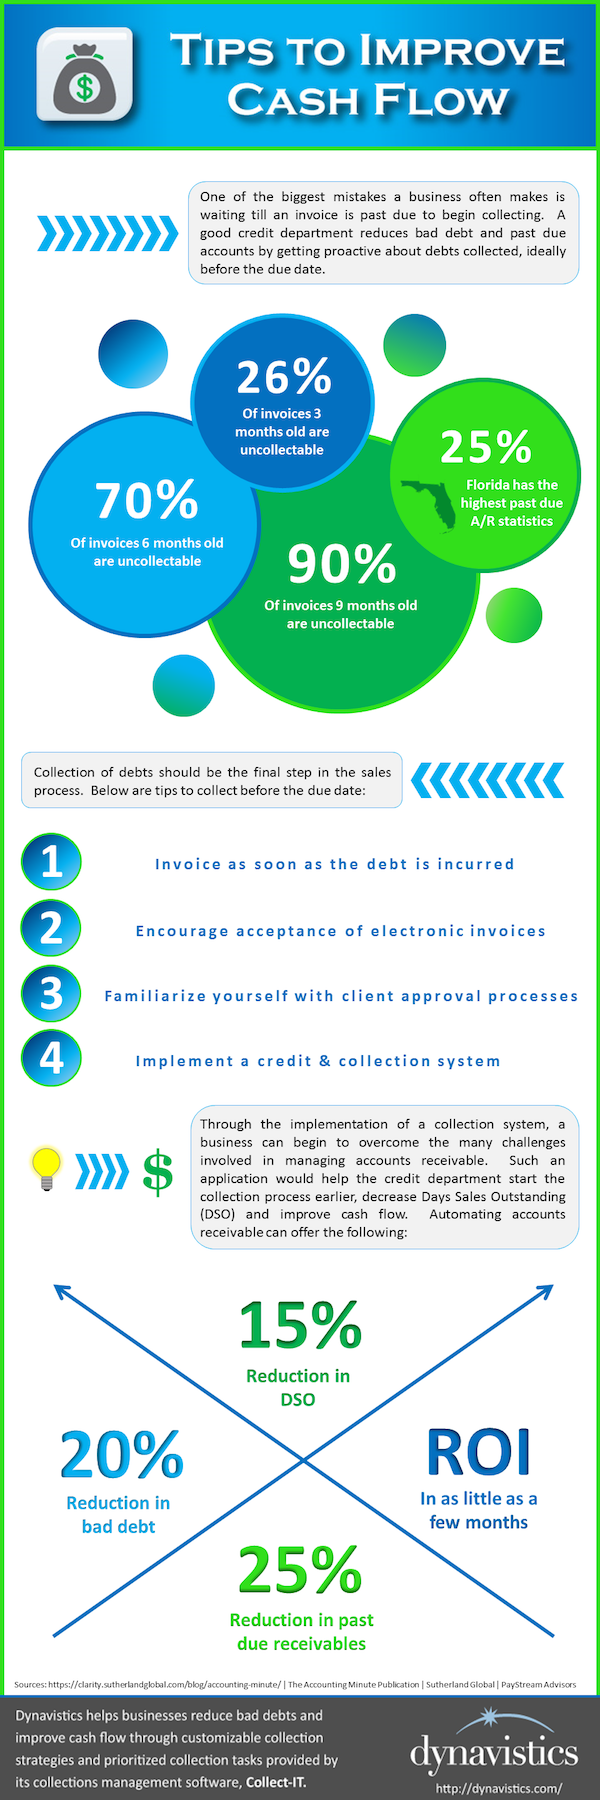 Tips-to-Improve-Cash-Flow_Infographic